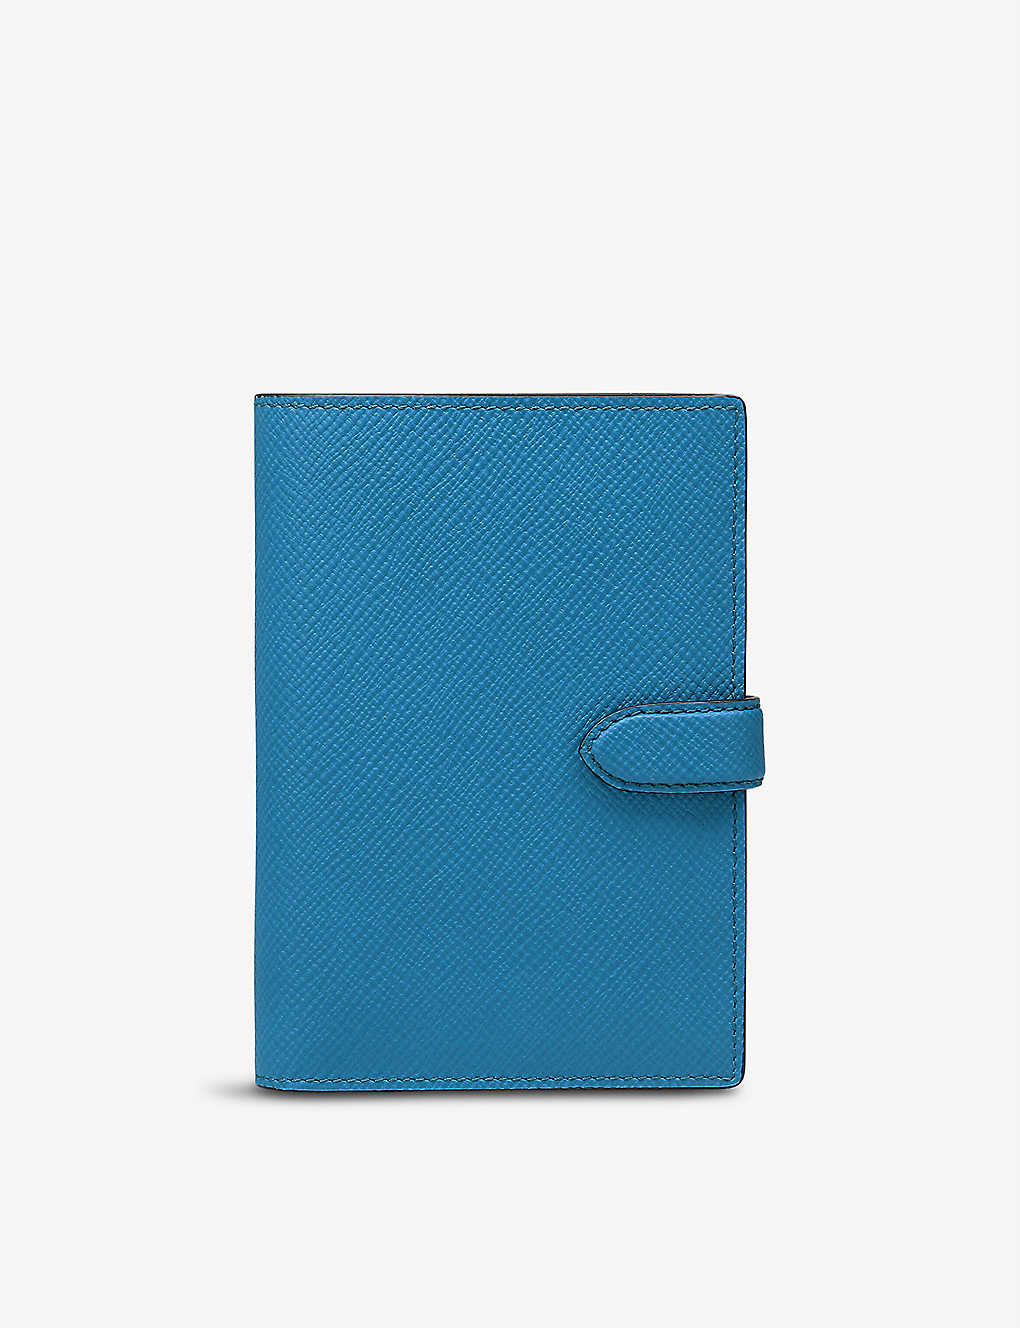 SMYTHSON: Textured-leather passport cover